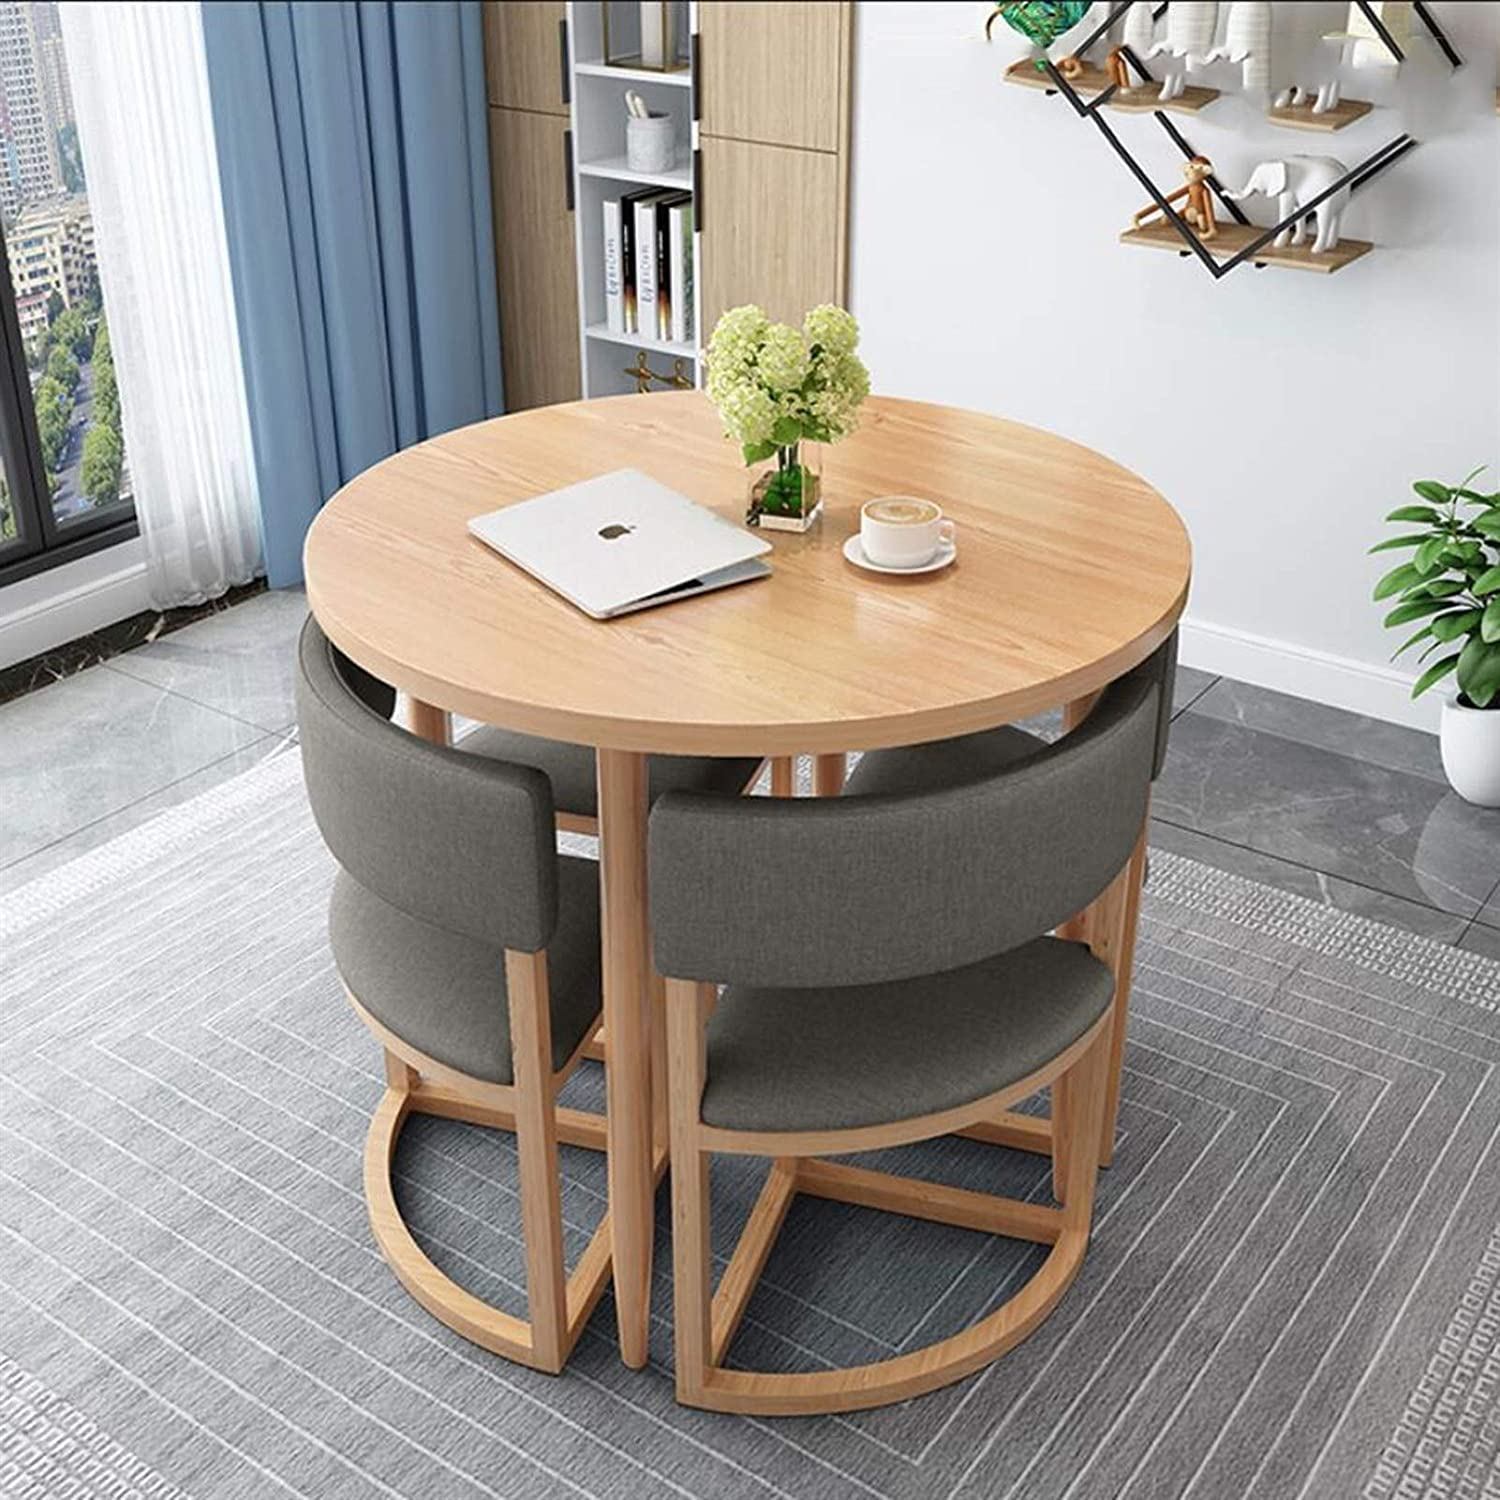 ZLSP Negotiating 5-Piece Max 63% OFF Modern Round Table Home Choice Chair Combinati